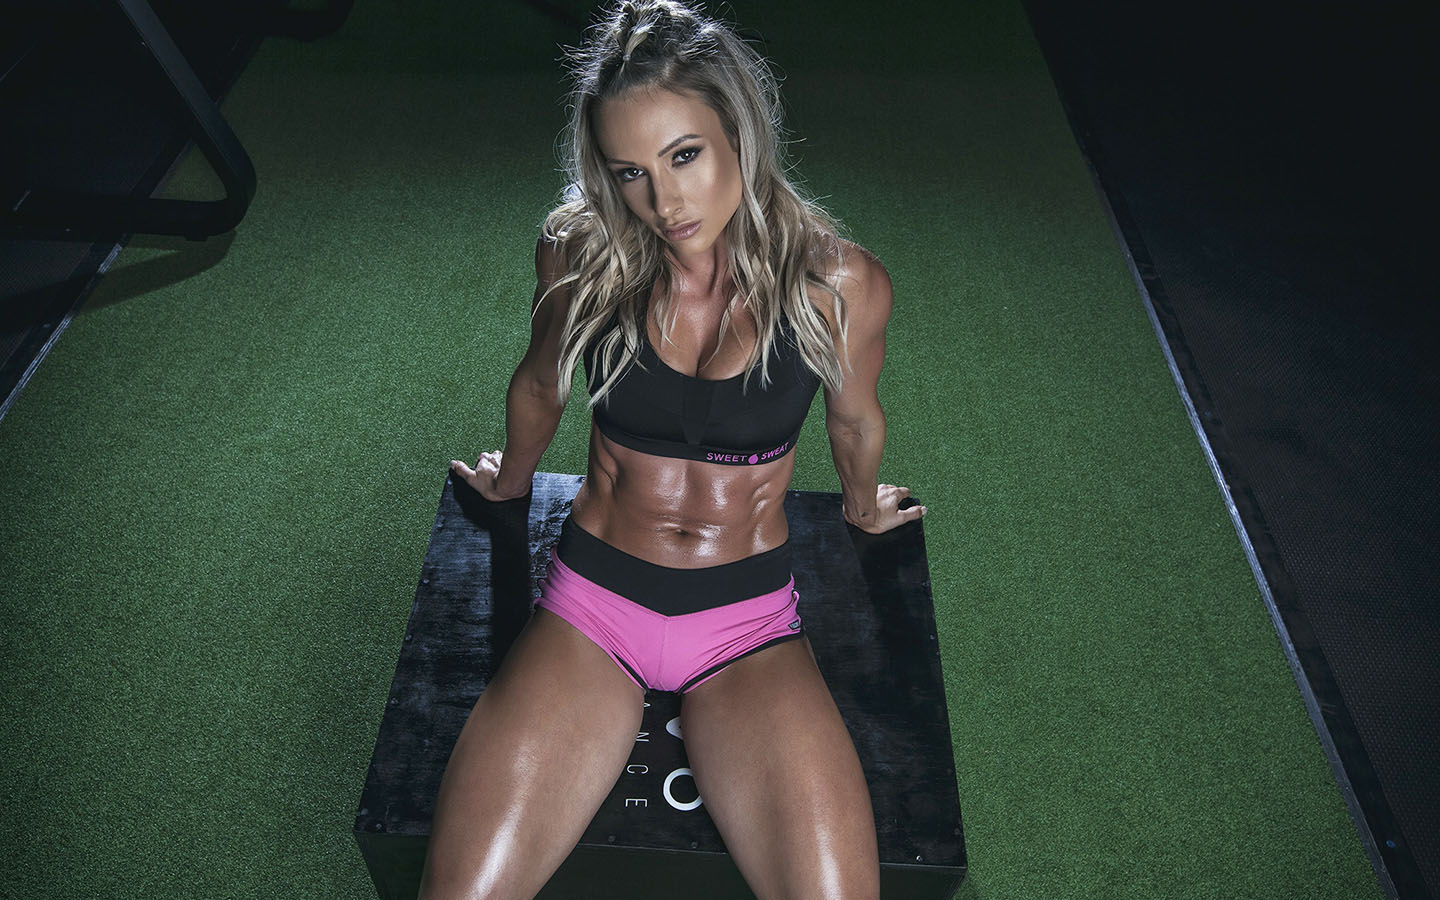 paige hathaway workouts tips